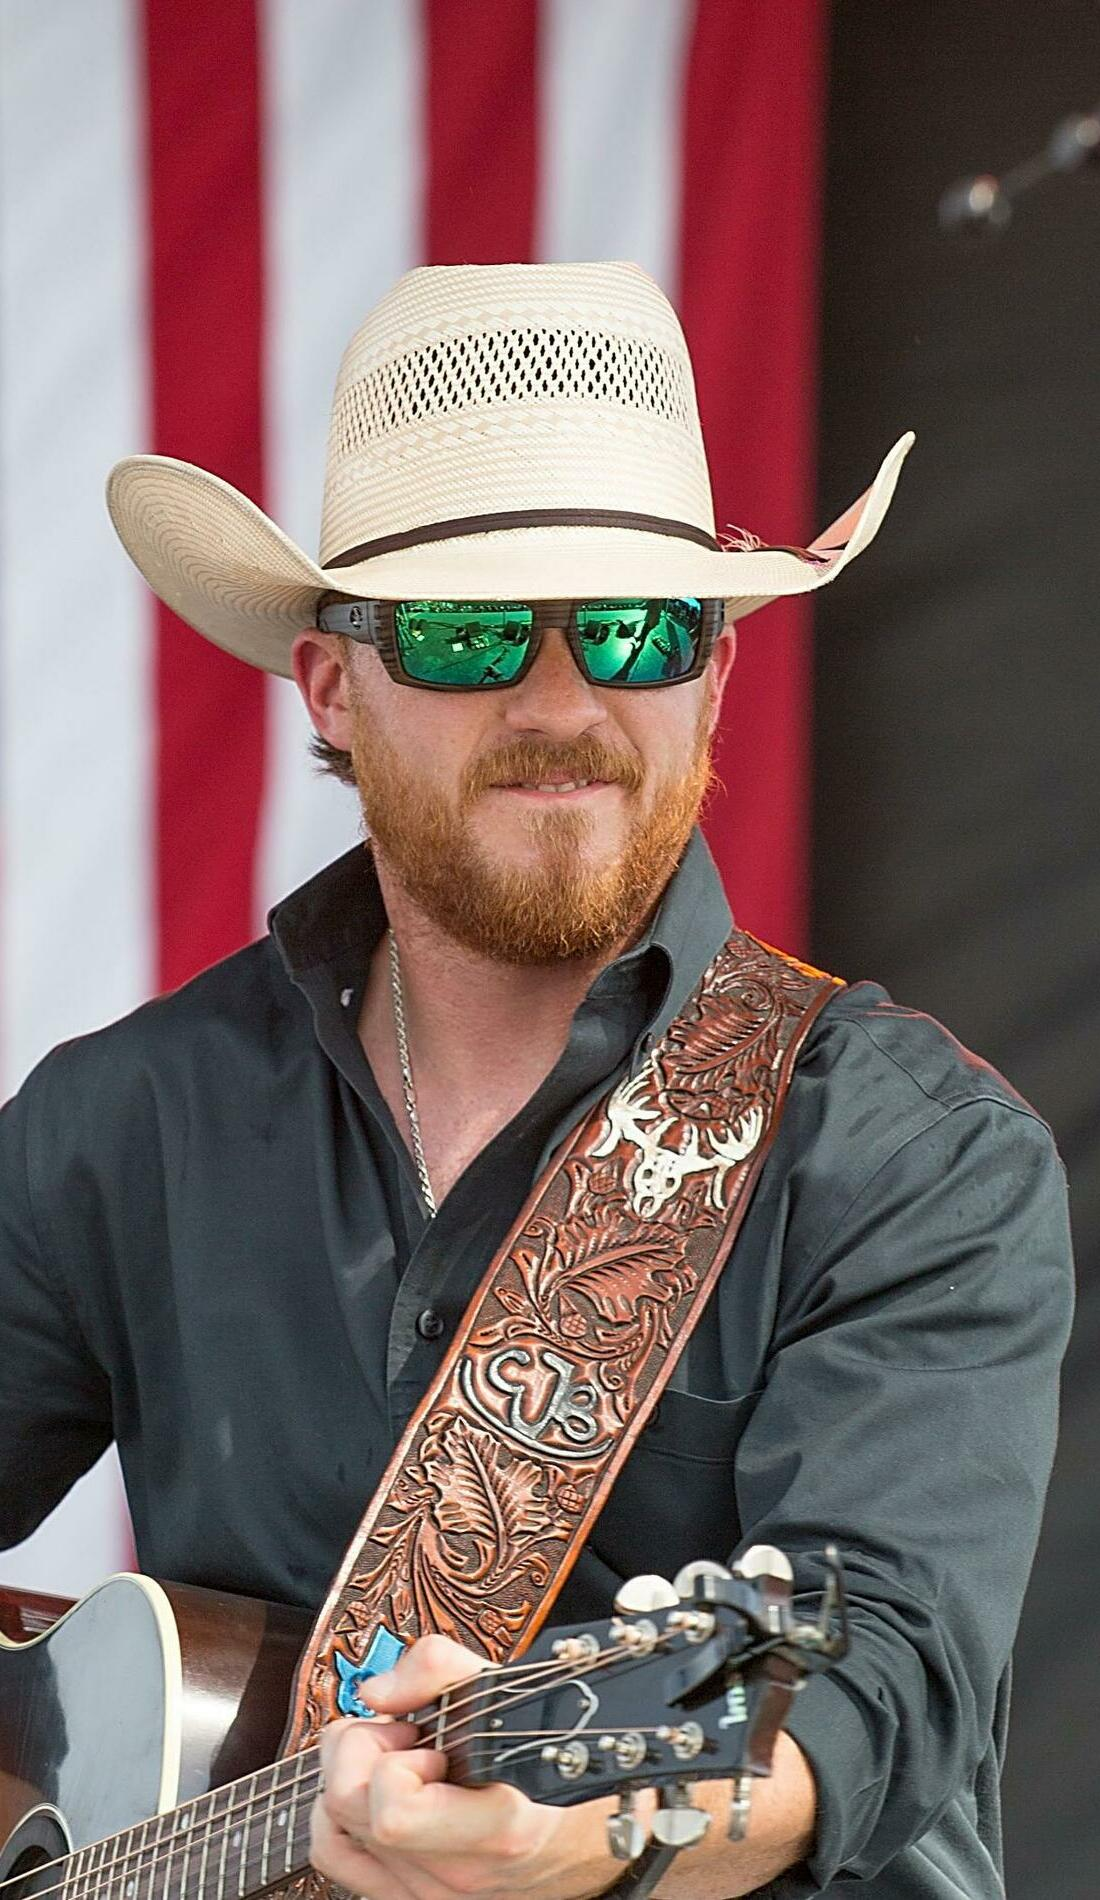 A Cody Johnson live event